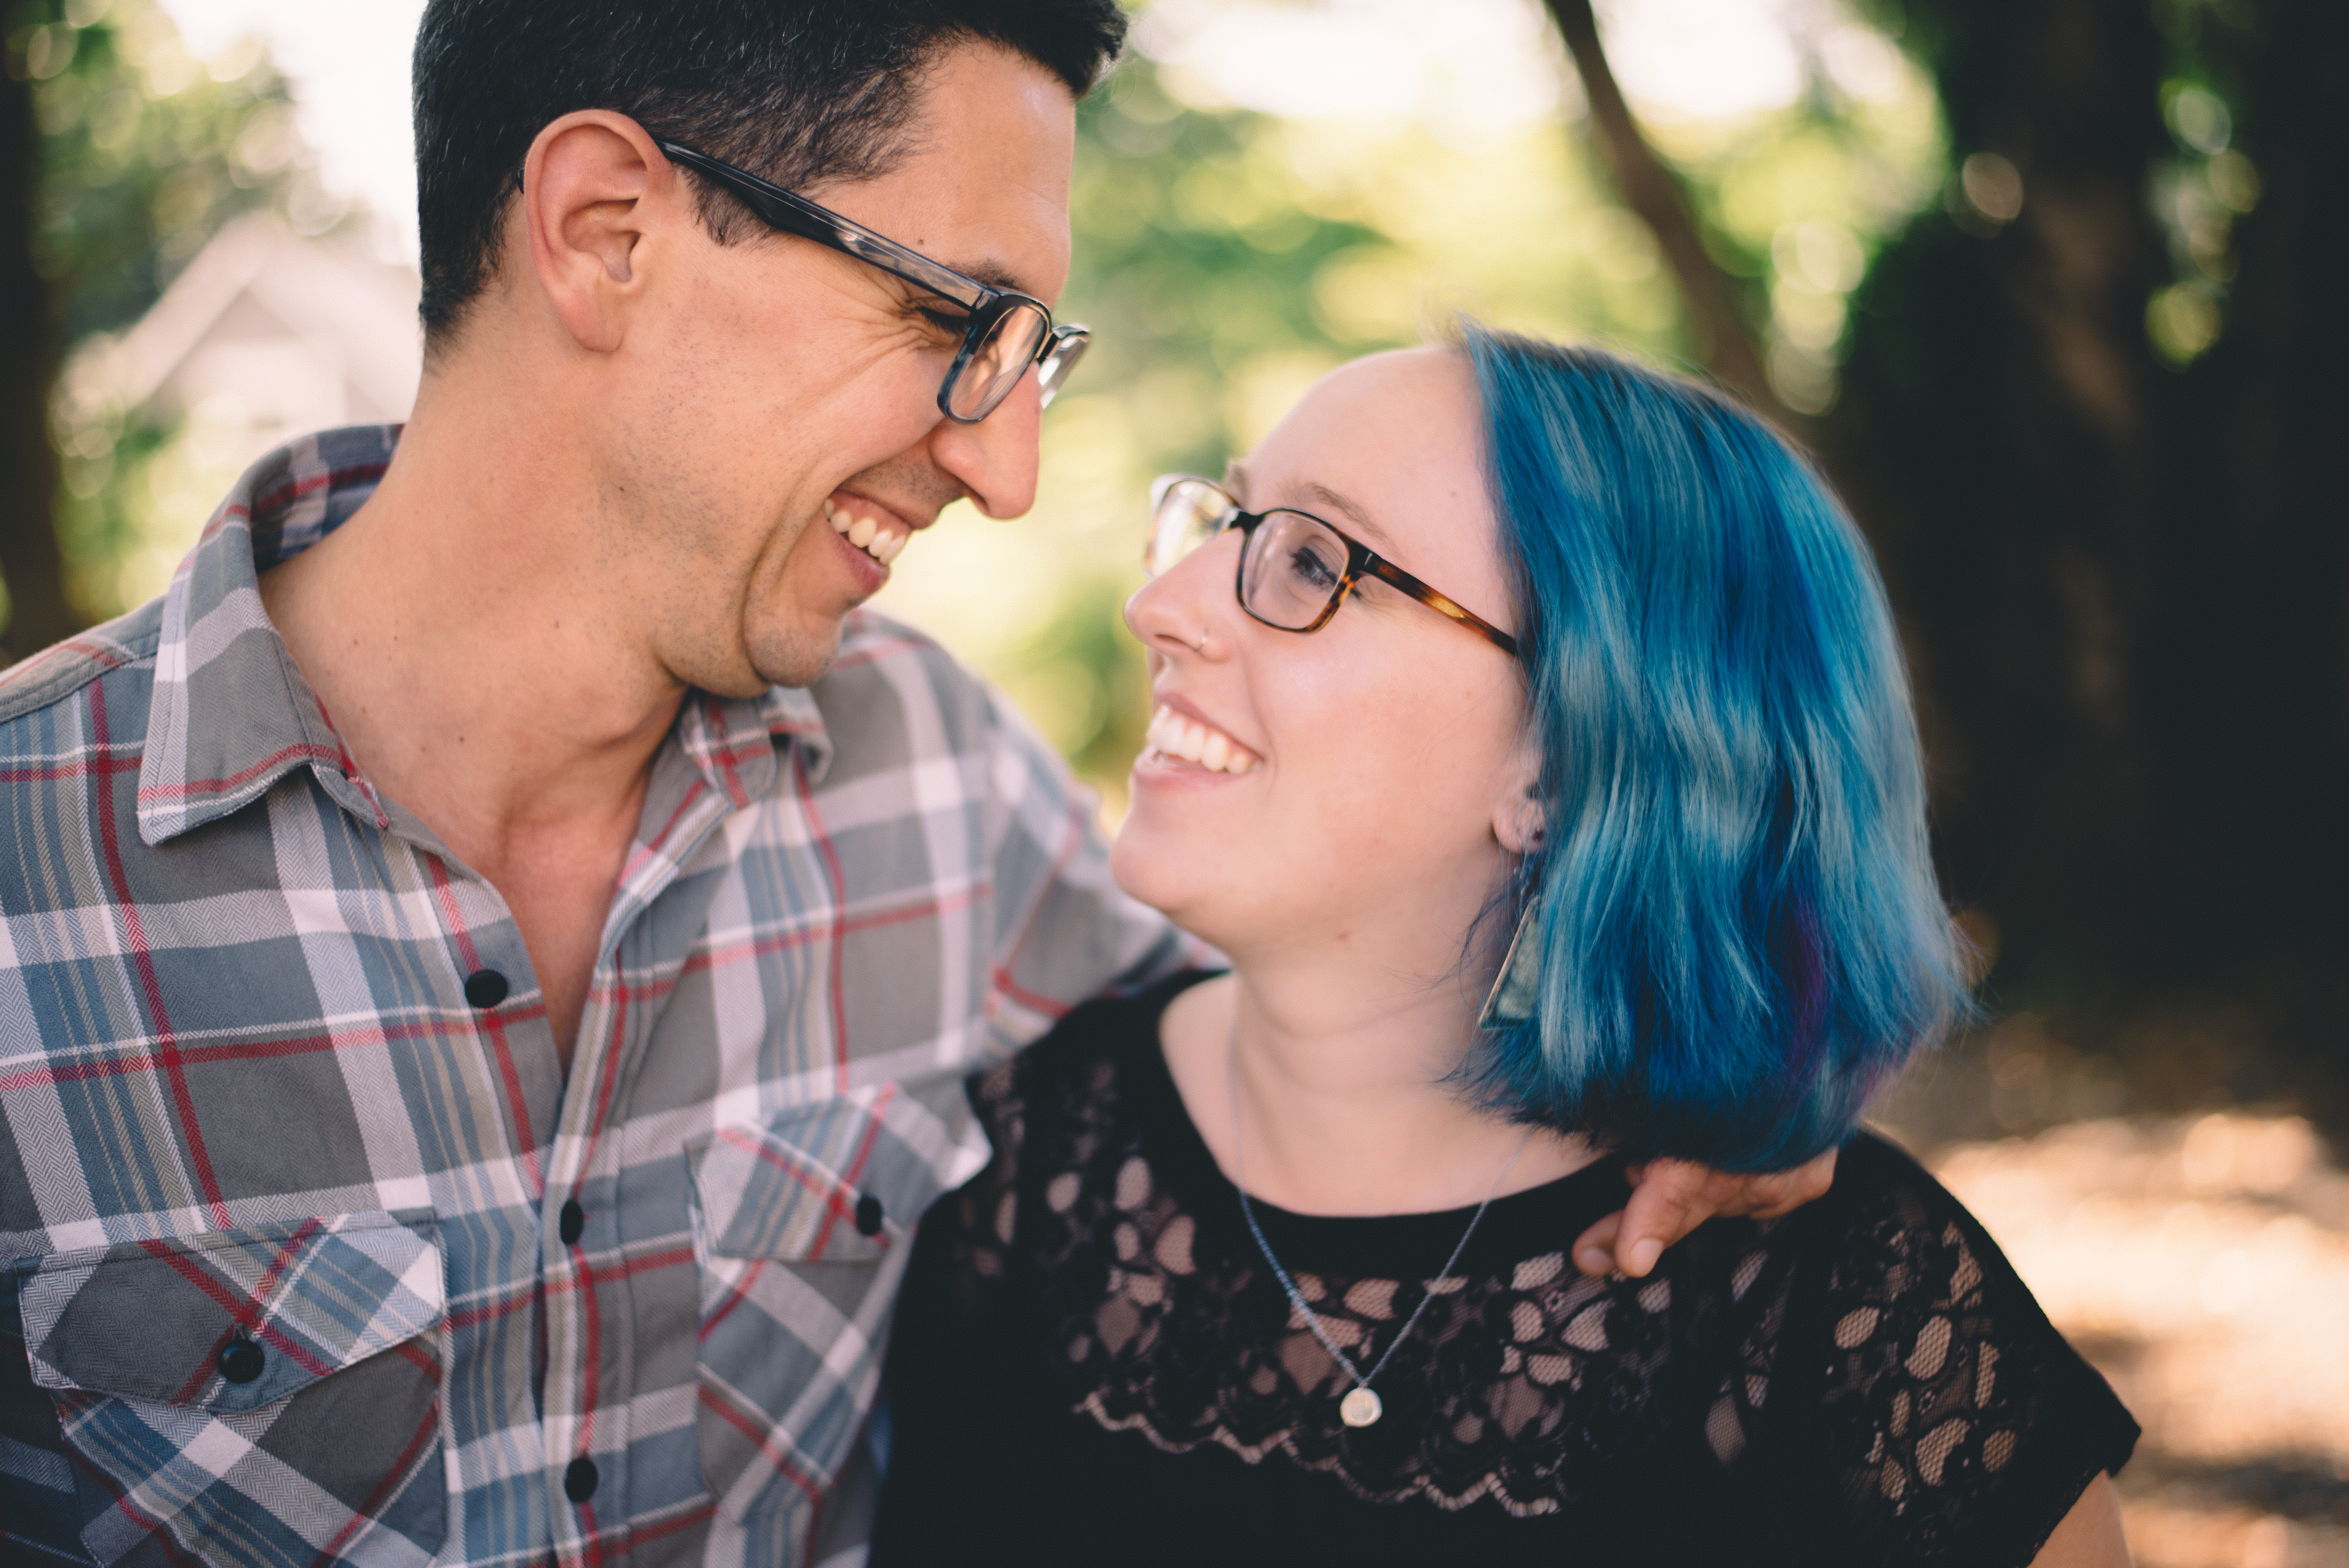 Welcome to our Documenting Love series where we capture peoples love stories through photos and the written word (Image courtesy of Karen Kirsch Photography).